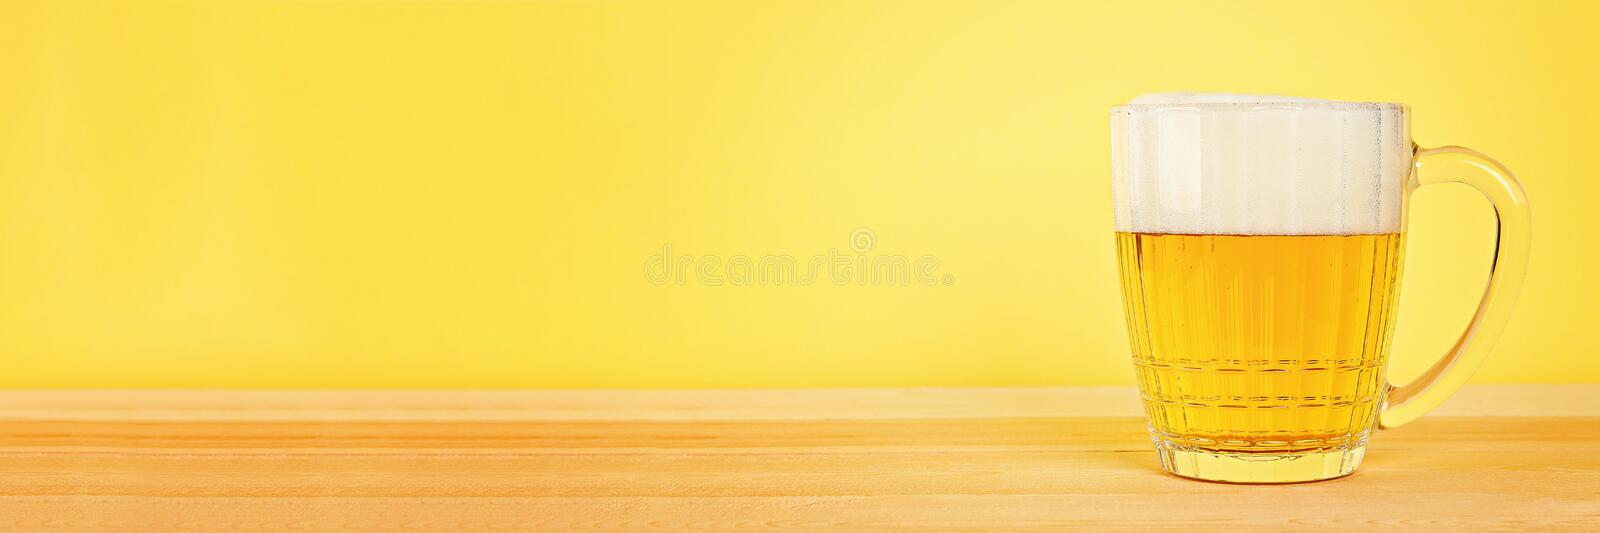 Glass beer on wood background with copy space stock photo